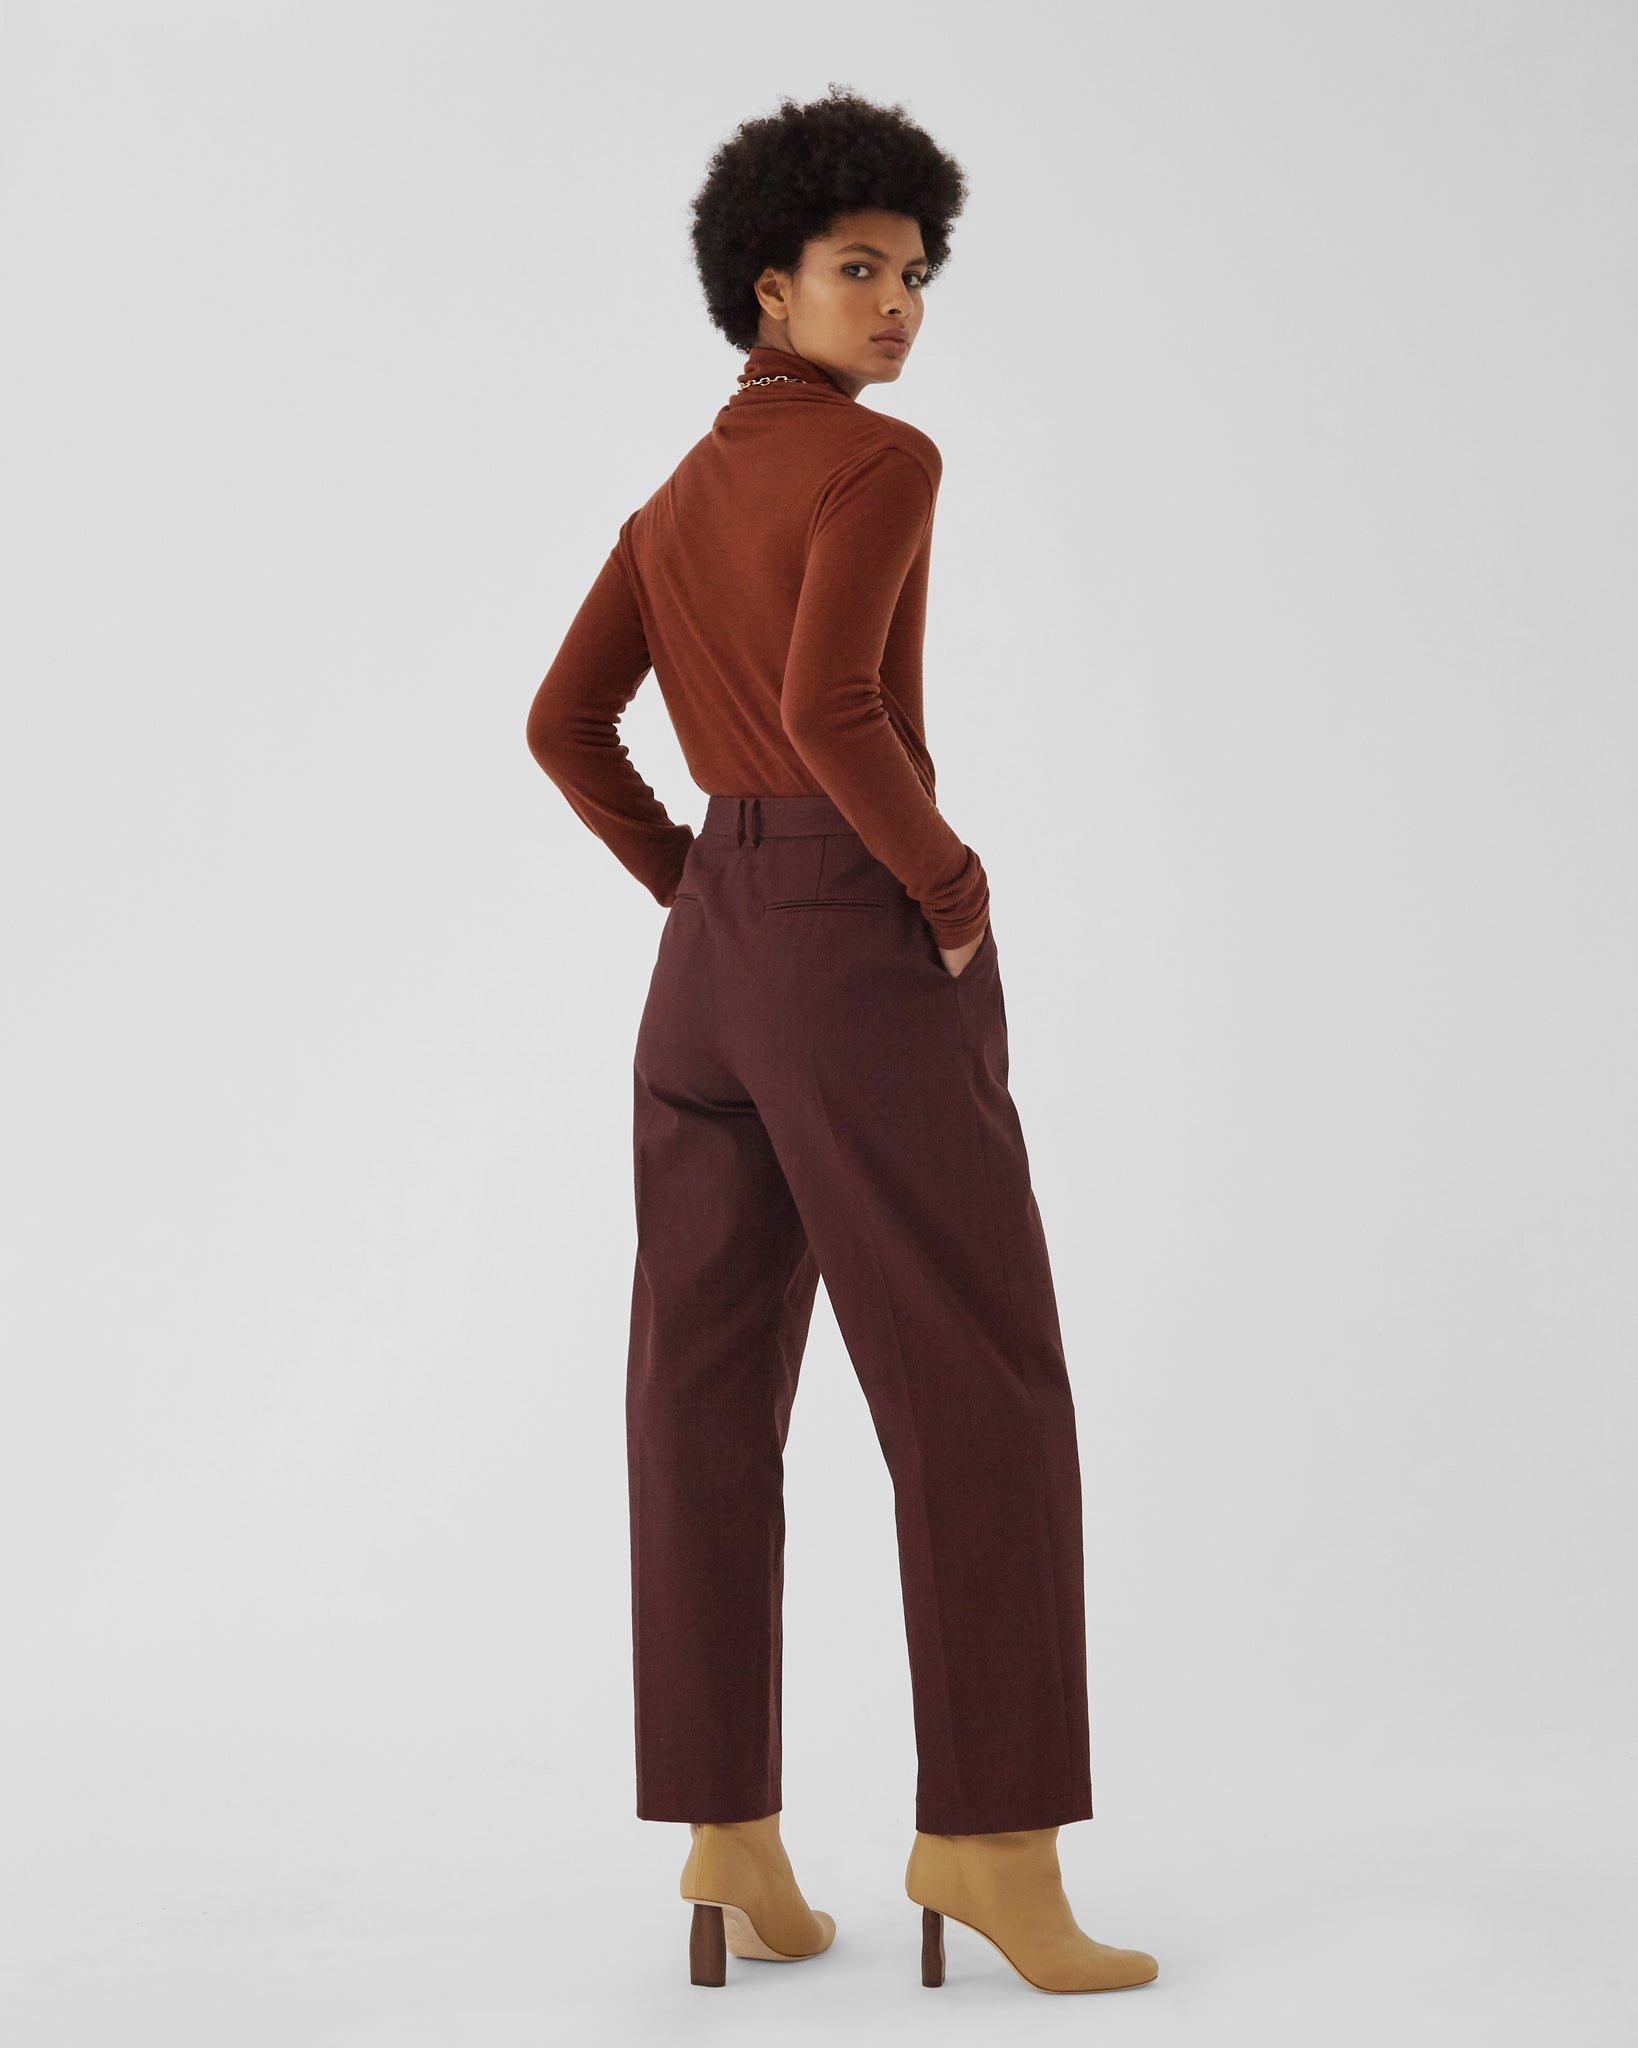 Mateo Trousers Cotton Canvas Burgundy - UNISEX